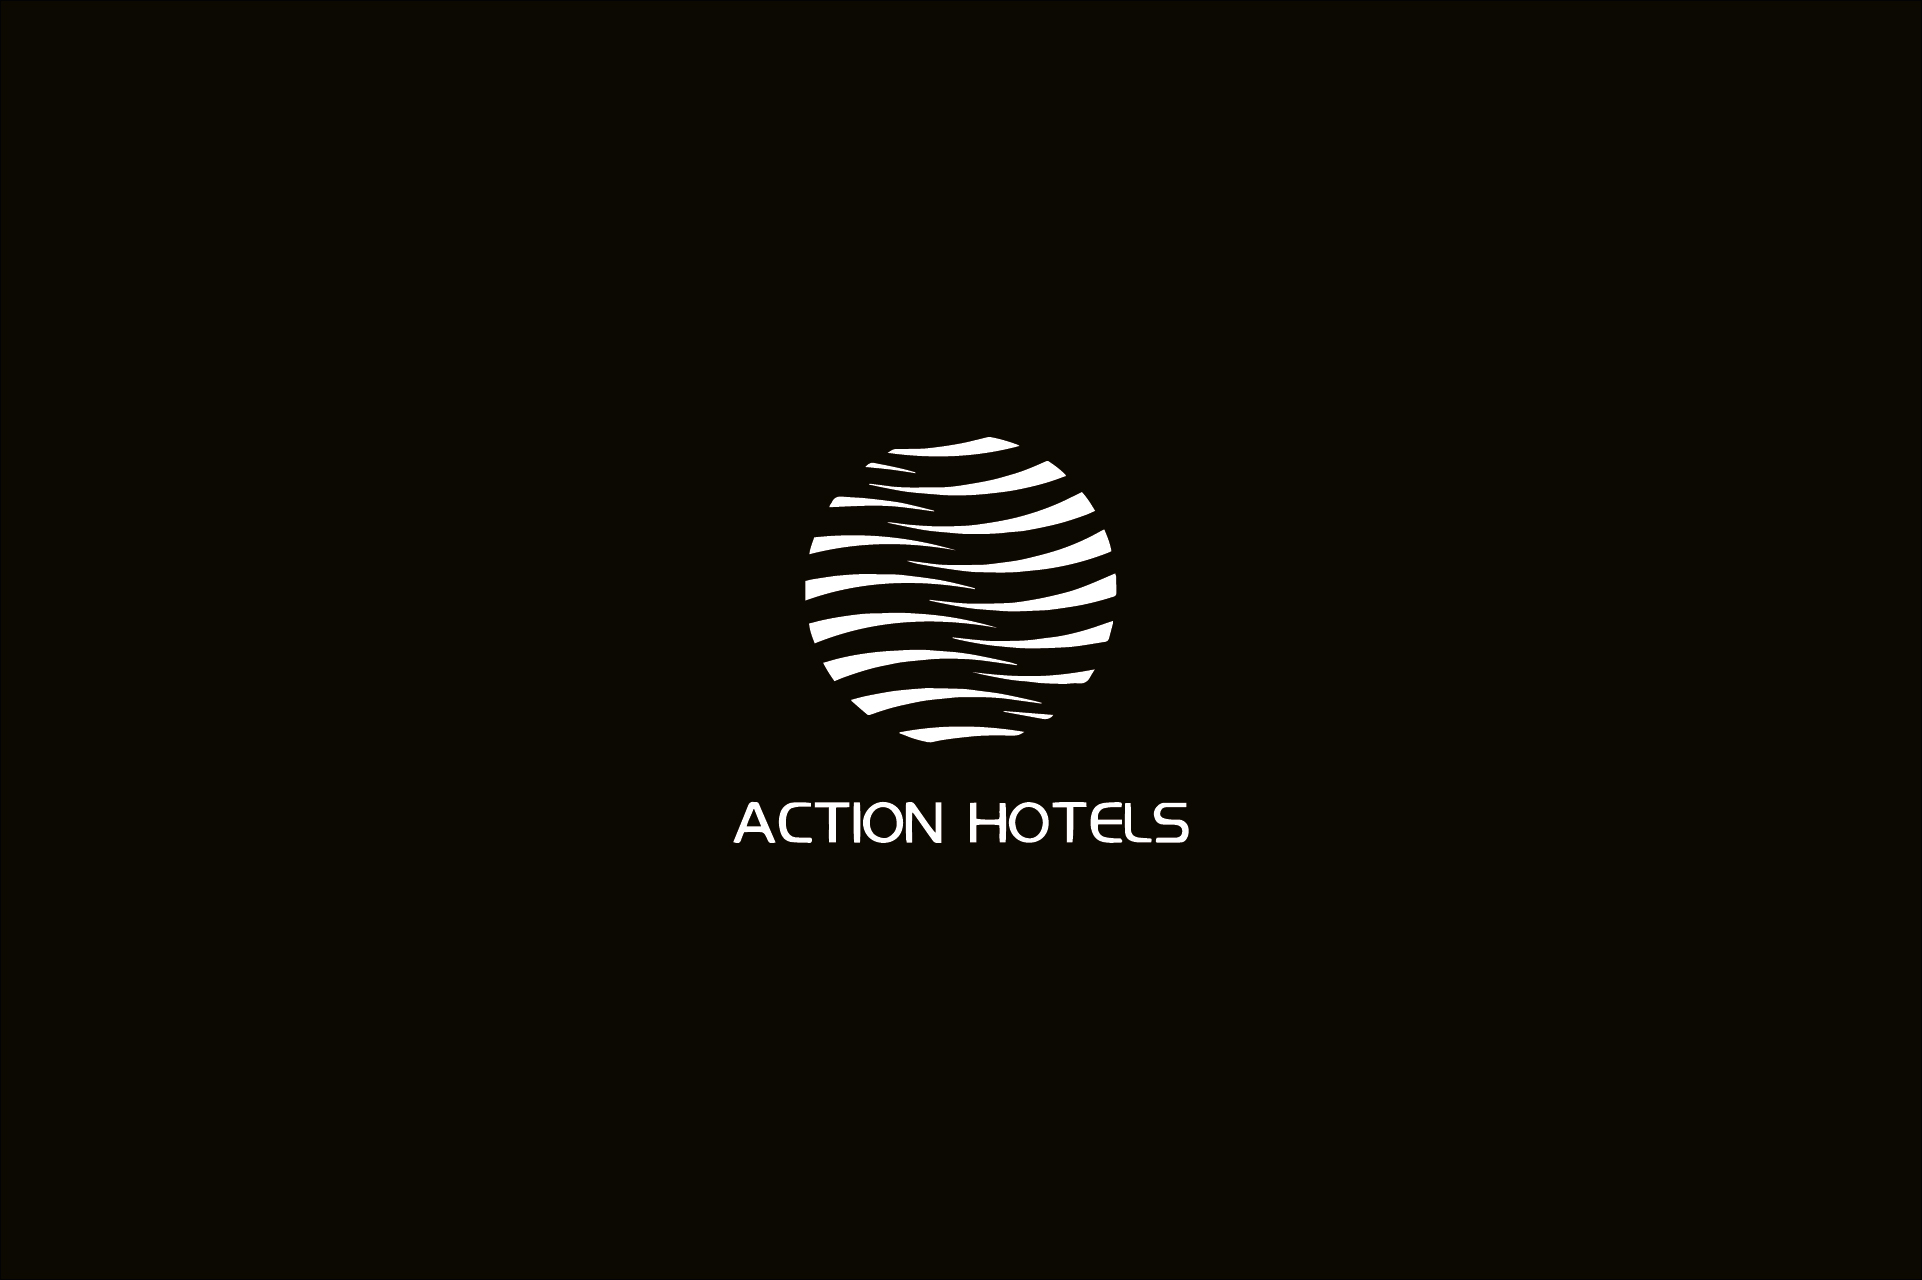 Action Hotels